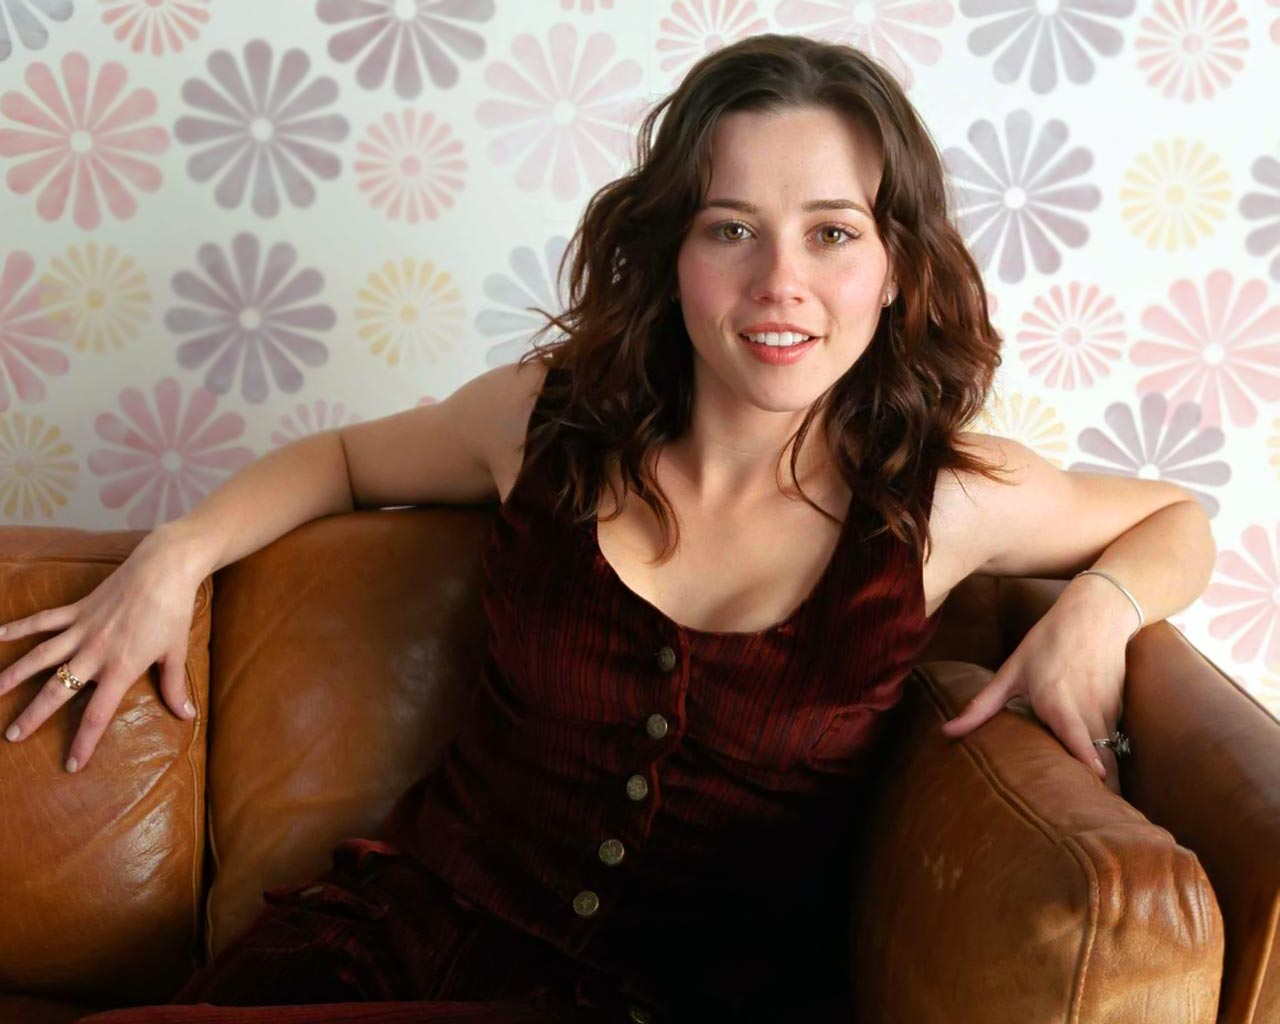 Linda Cardellini or Ellen Page? | IGN Boards